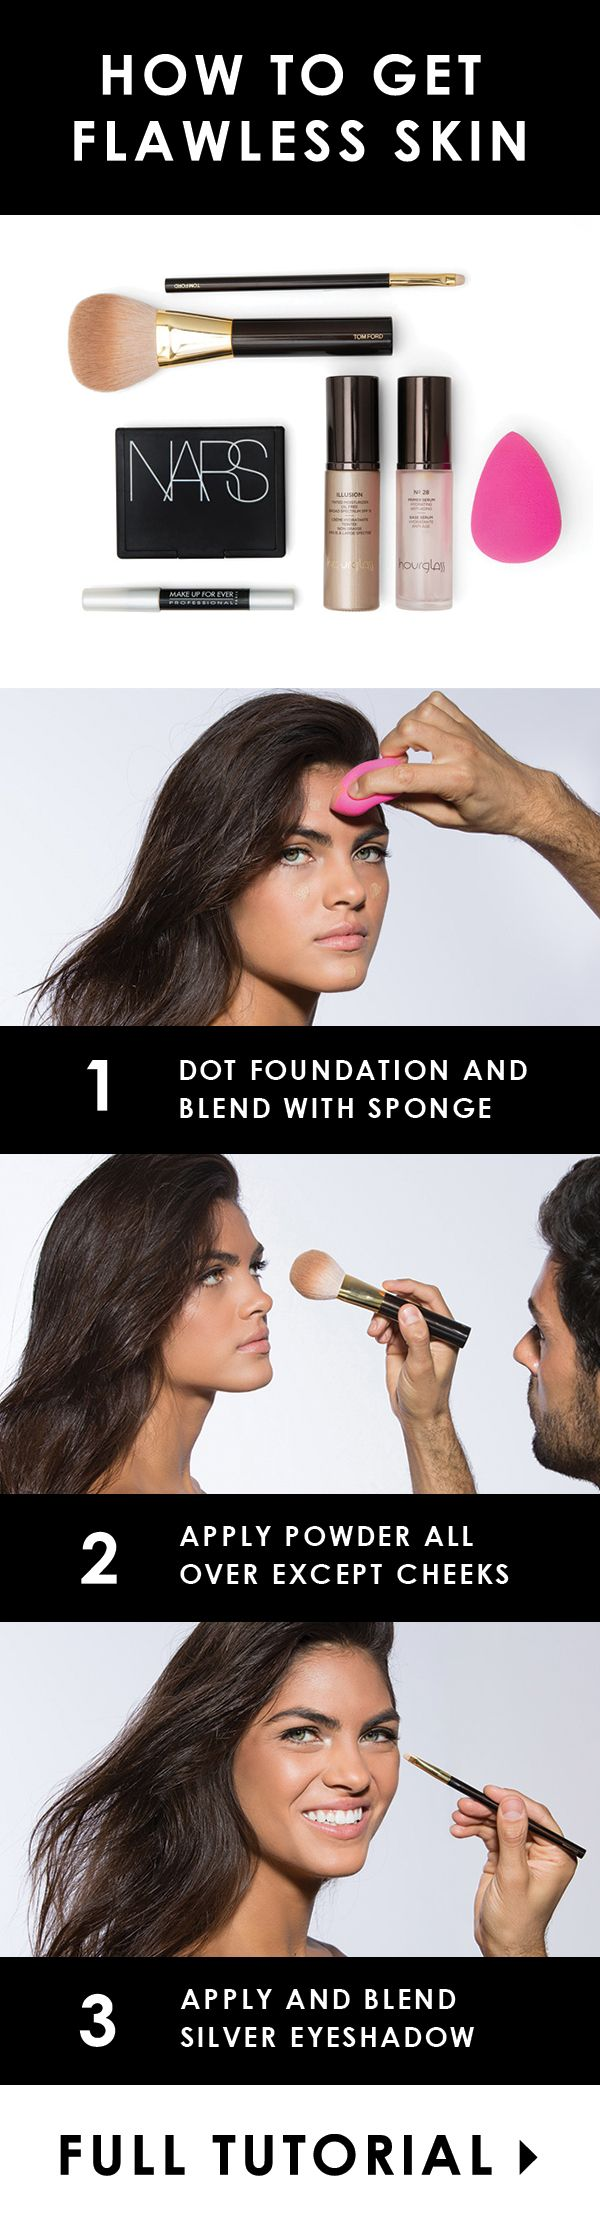 best bee you tee full images on pinterest beauty tips make up